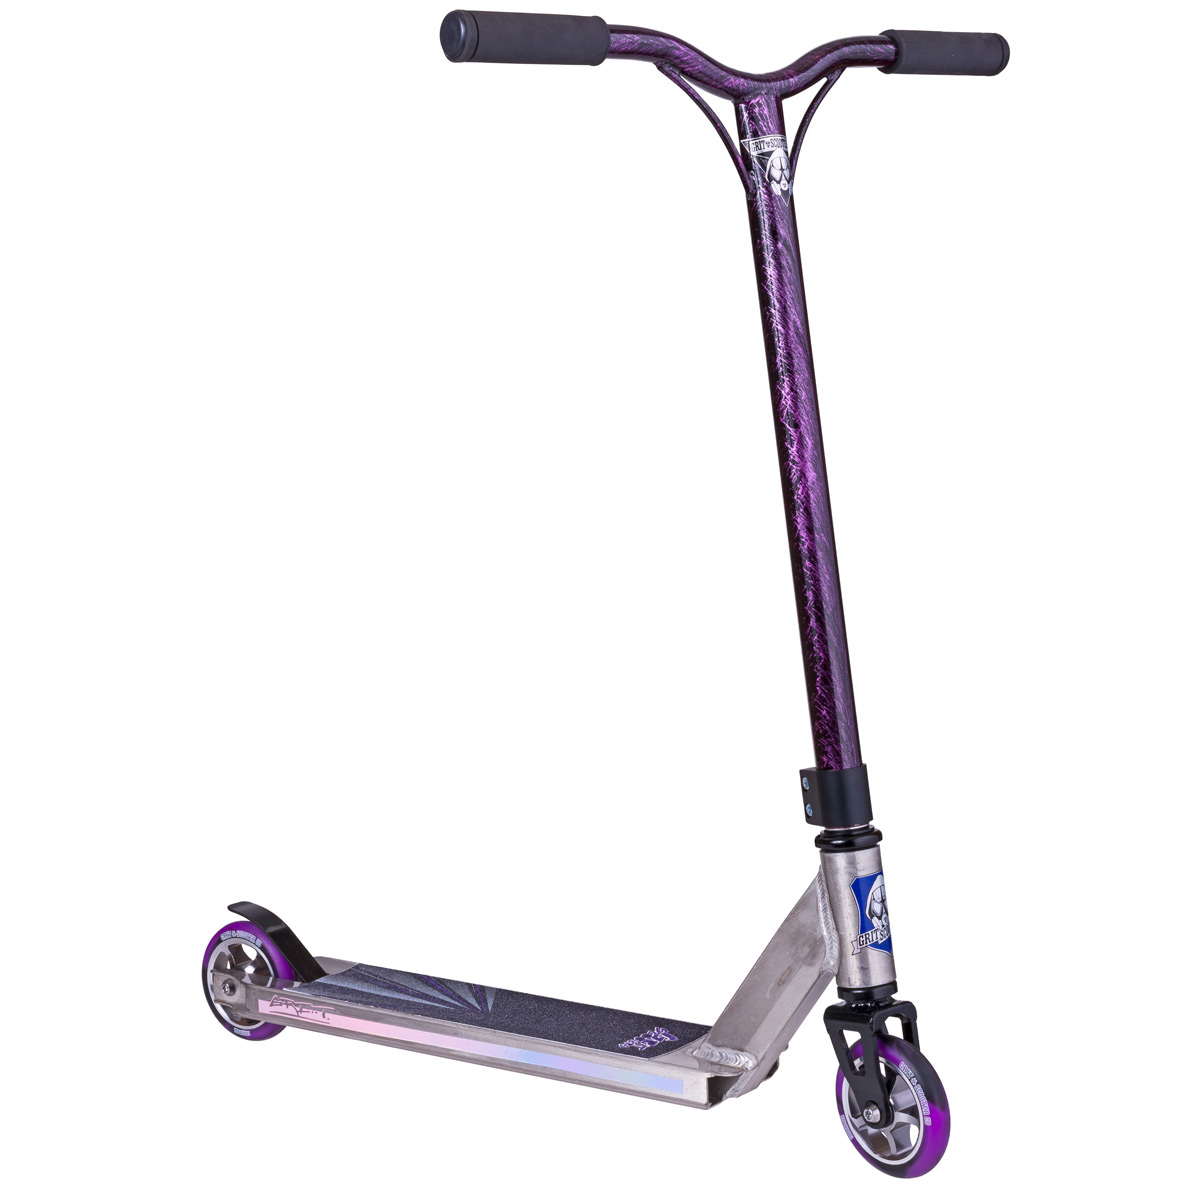 Grit Scooters Fluxx 2015 Raw Lazer Purple Scooters Pro